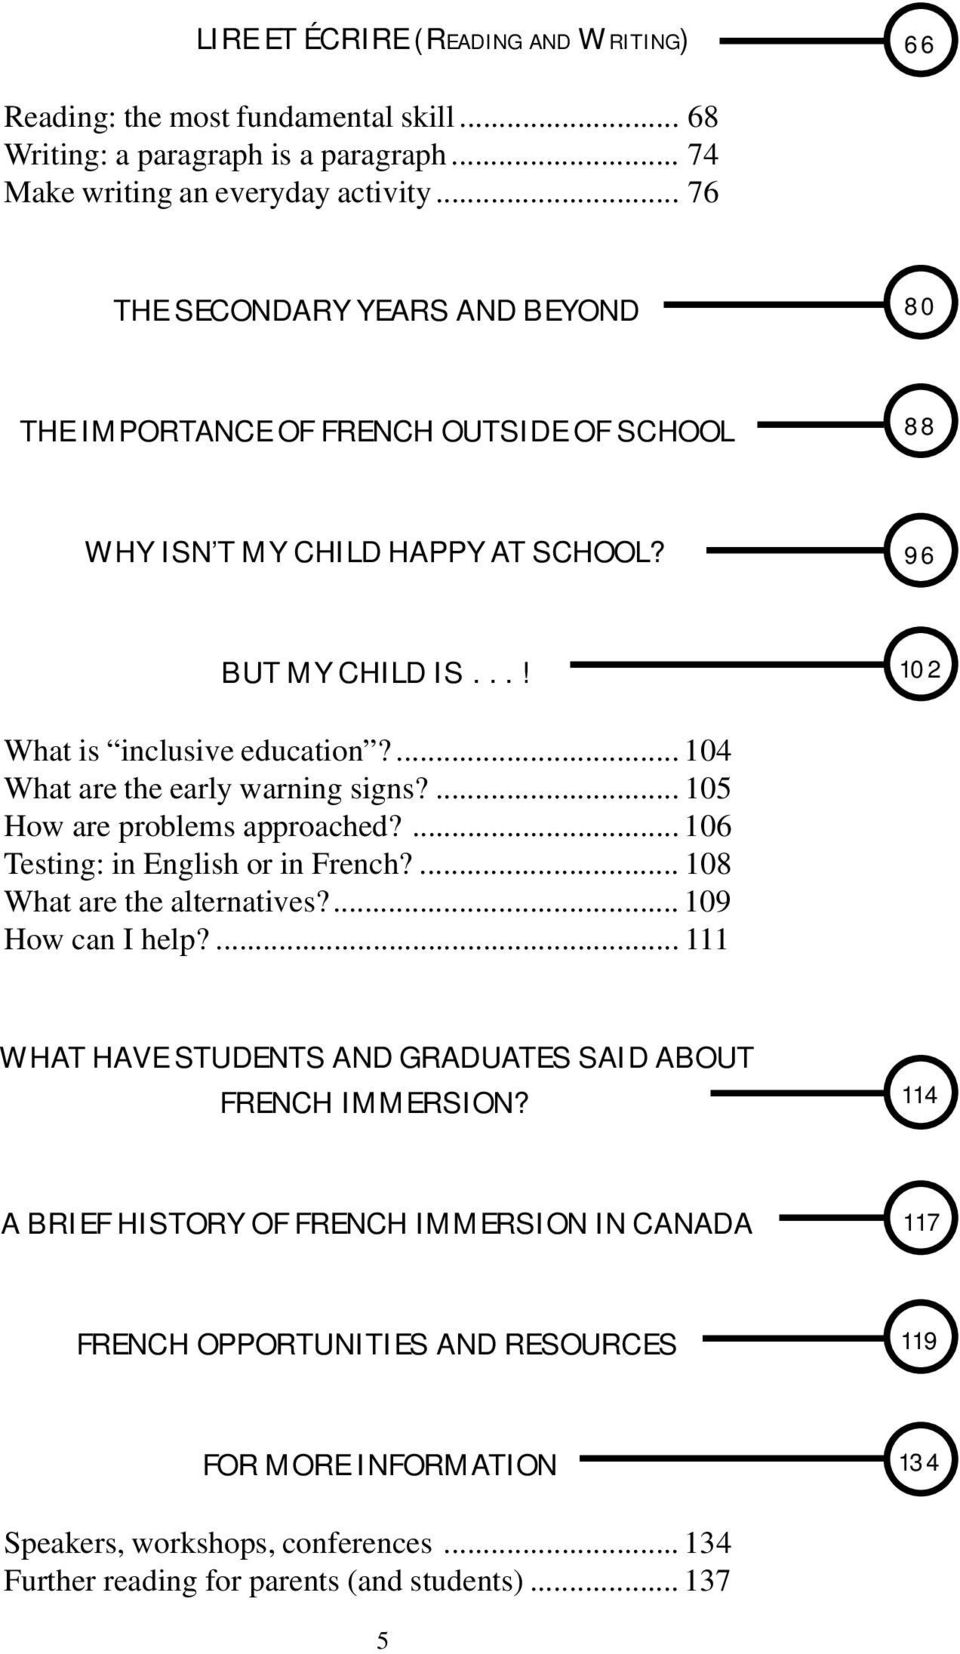 ... 104 What are the early warning signs?... 105 How are problems approached?... 106 Testing: in English or in French?... 108 What are the alternatives?... 109 How can I help?